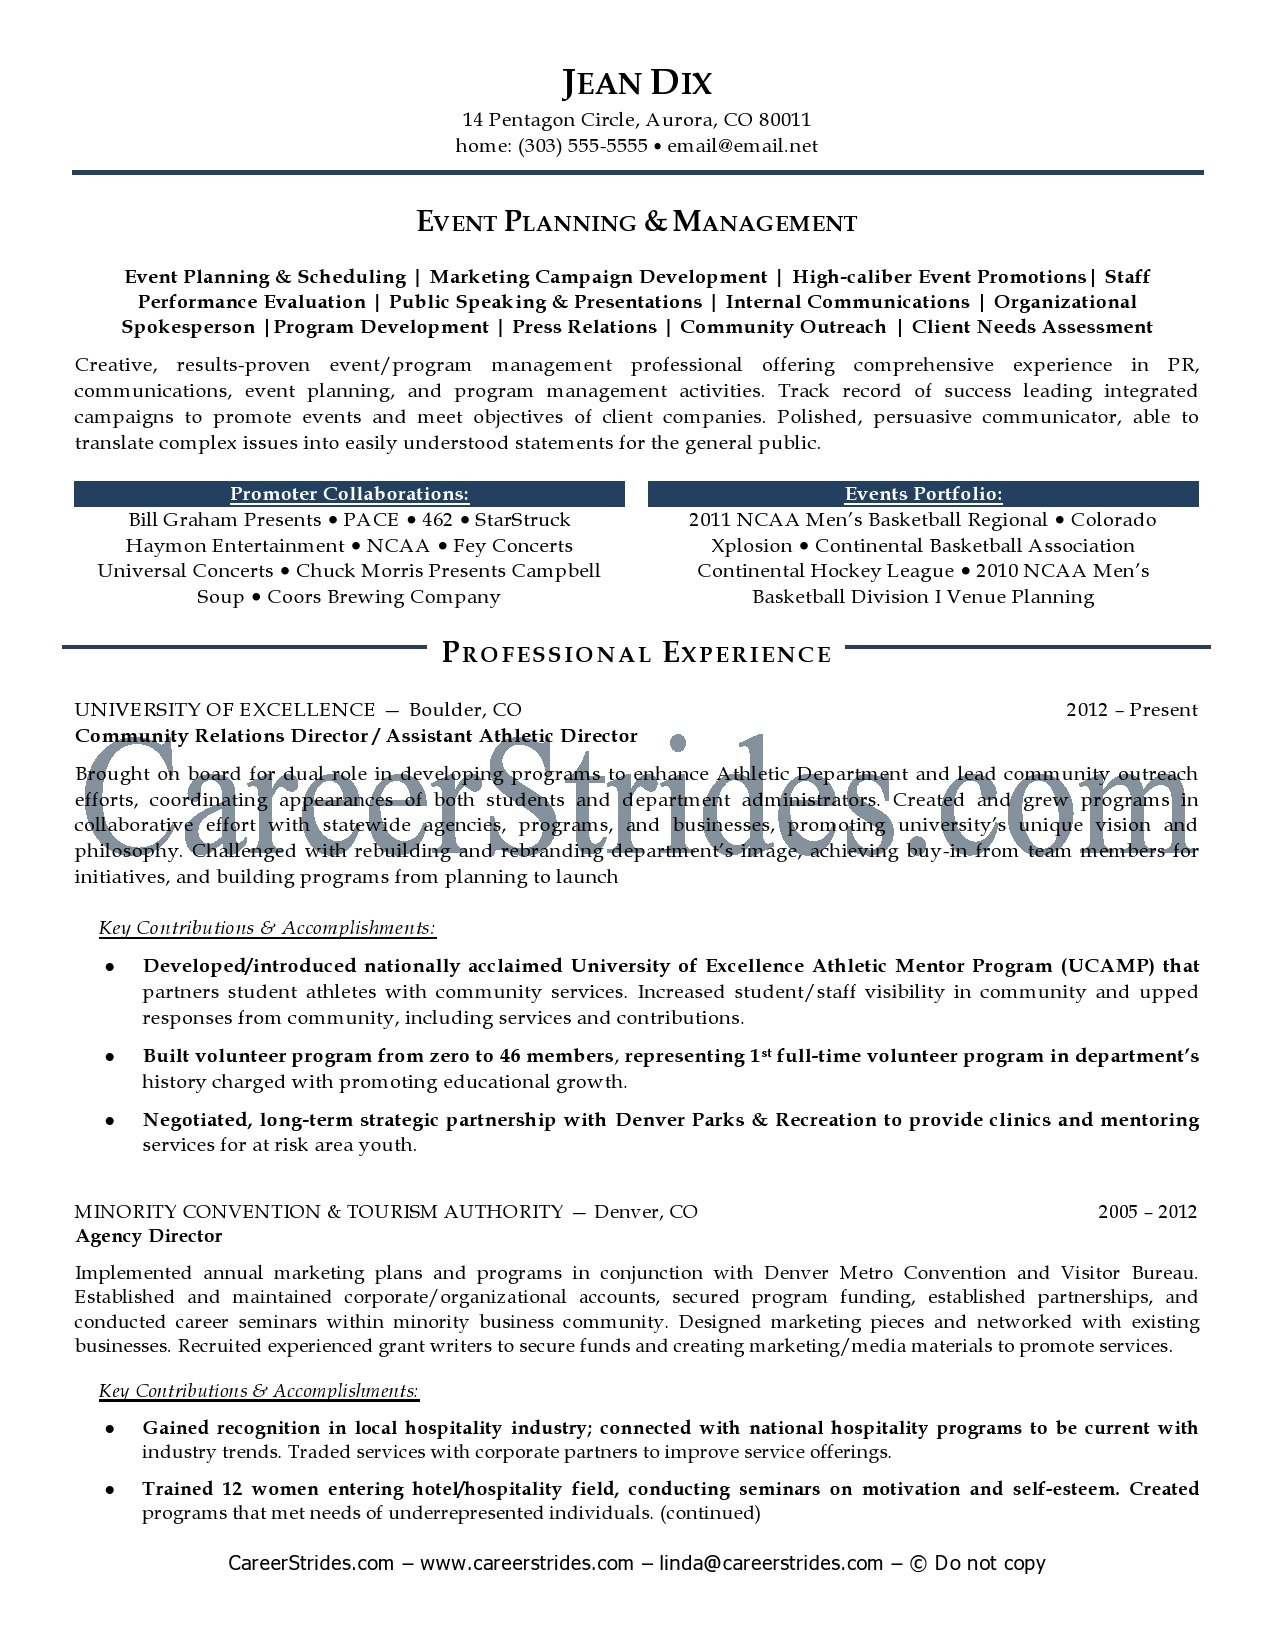 Event Planner Resumes Examples event planner resume samples – Event Planner Resume Objective